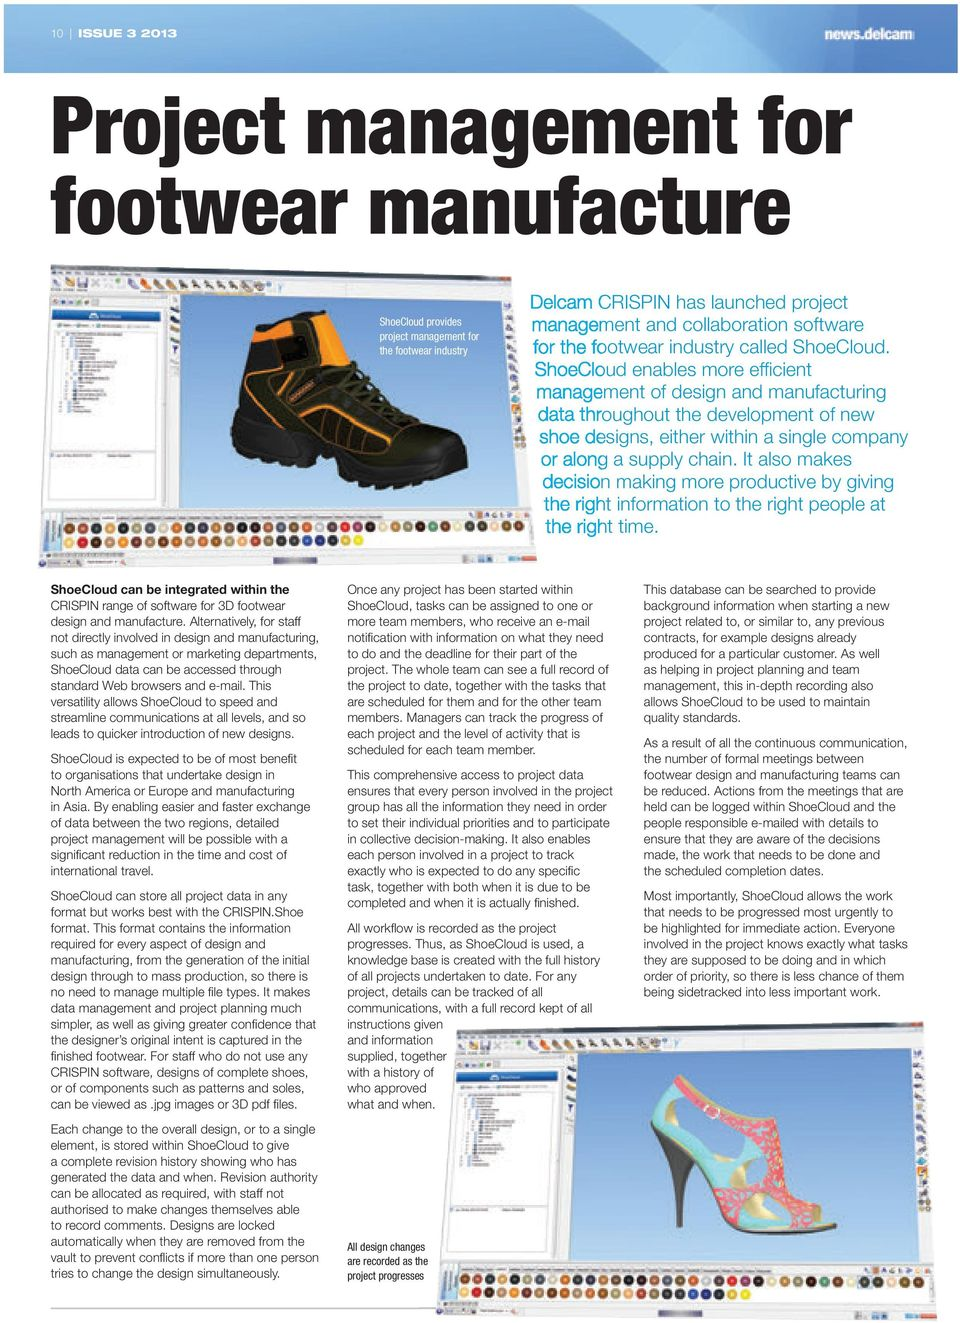 ShoeCloud enables more efficient management of design and manufacturing data throughout the development of new shoe designs, either within a single company or along a supply chain.